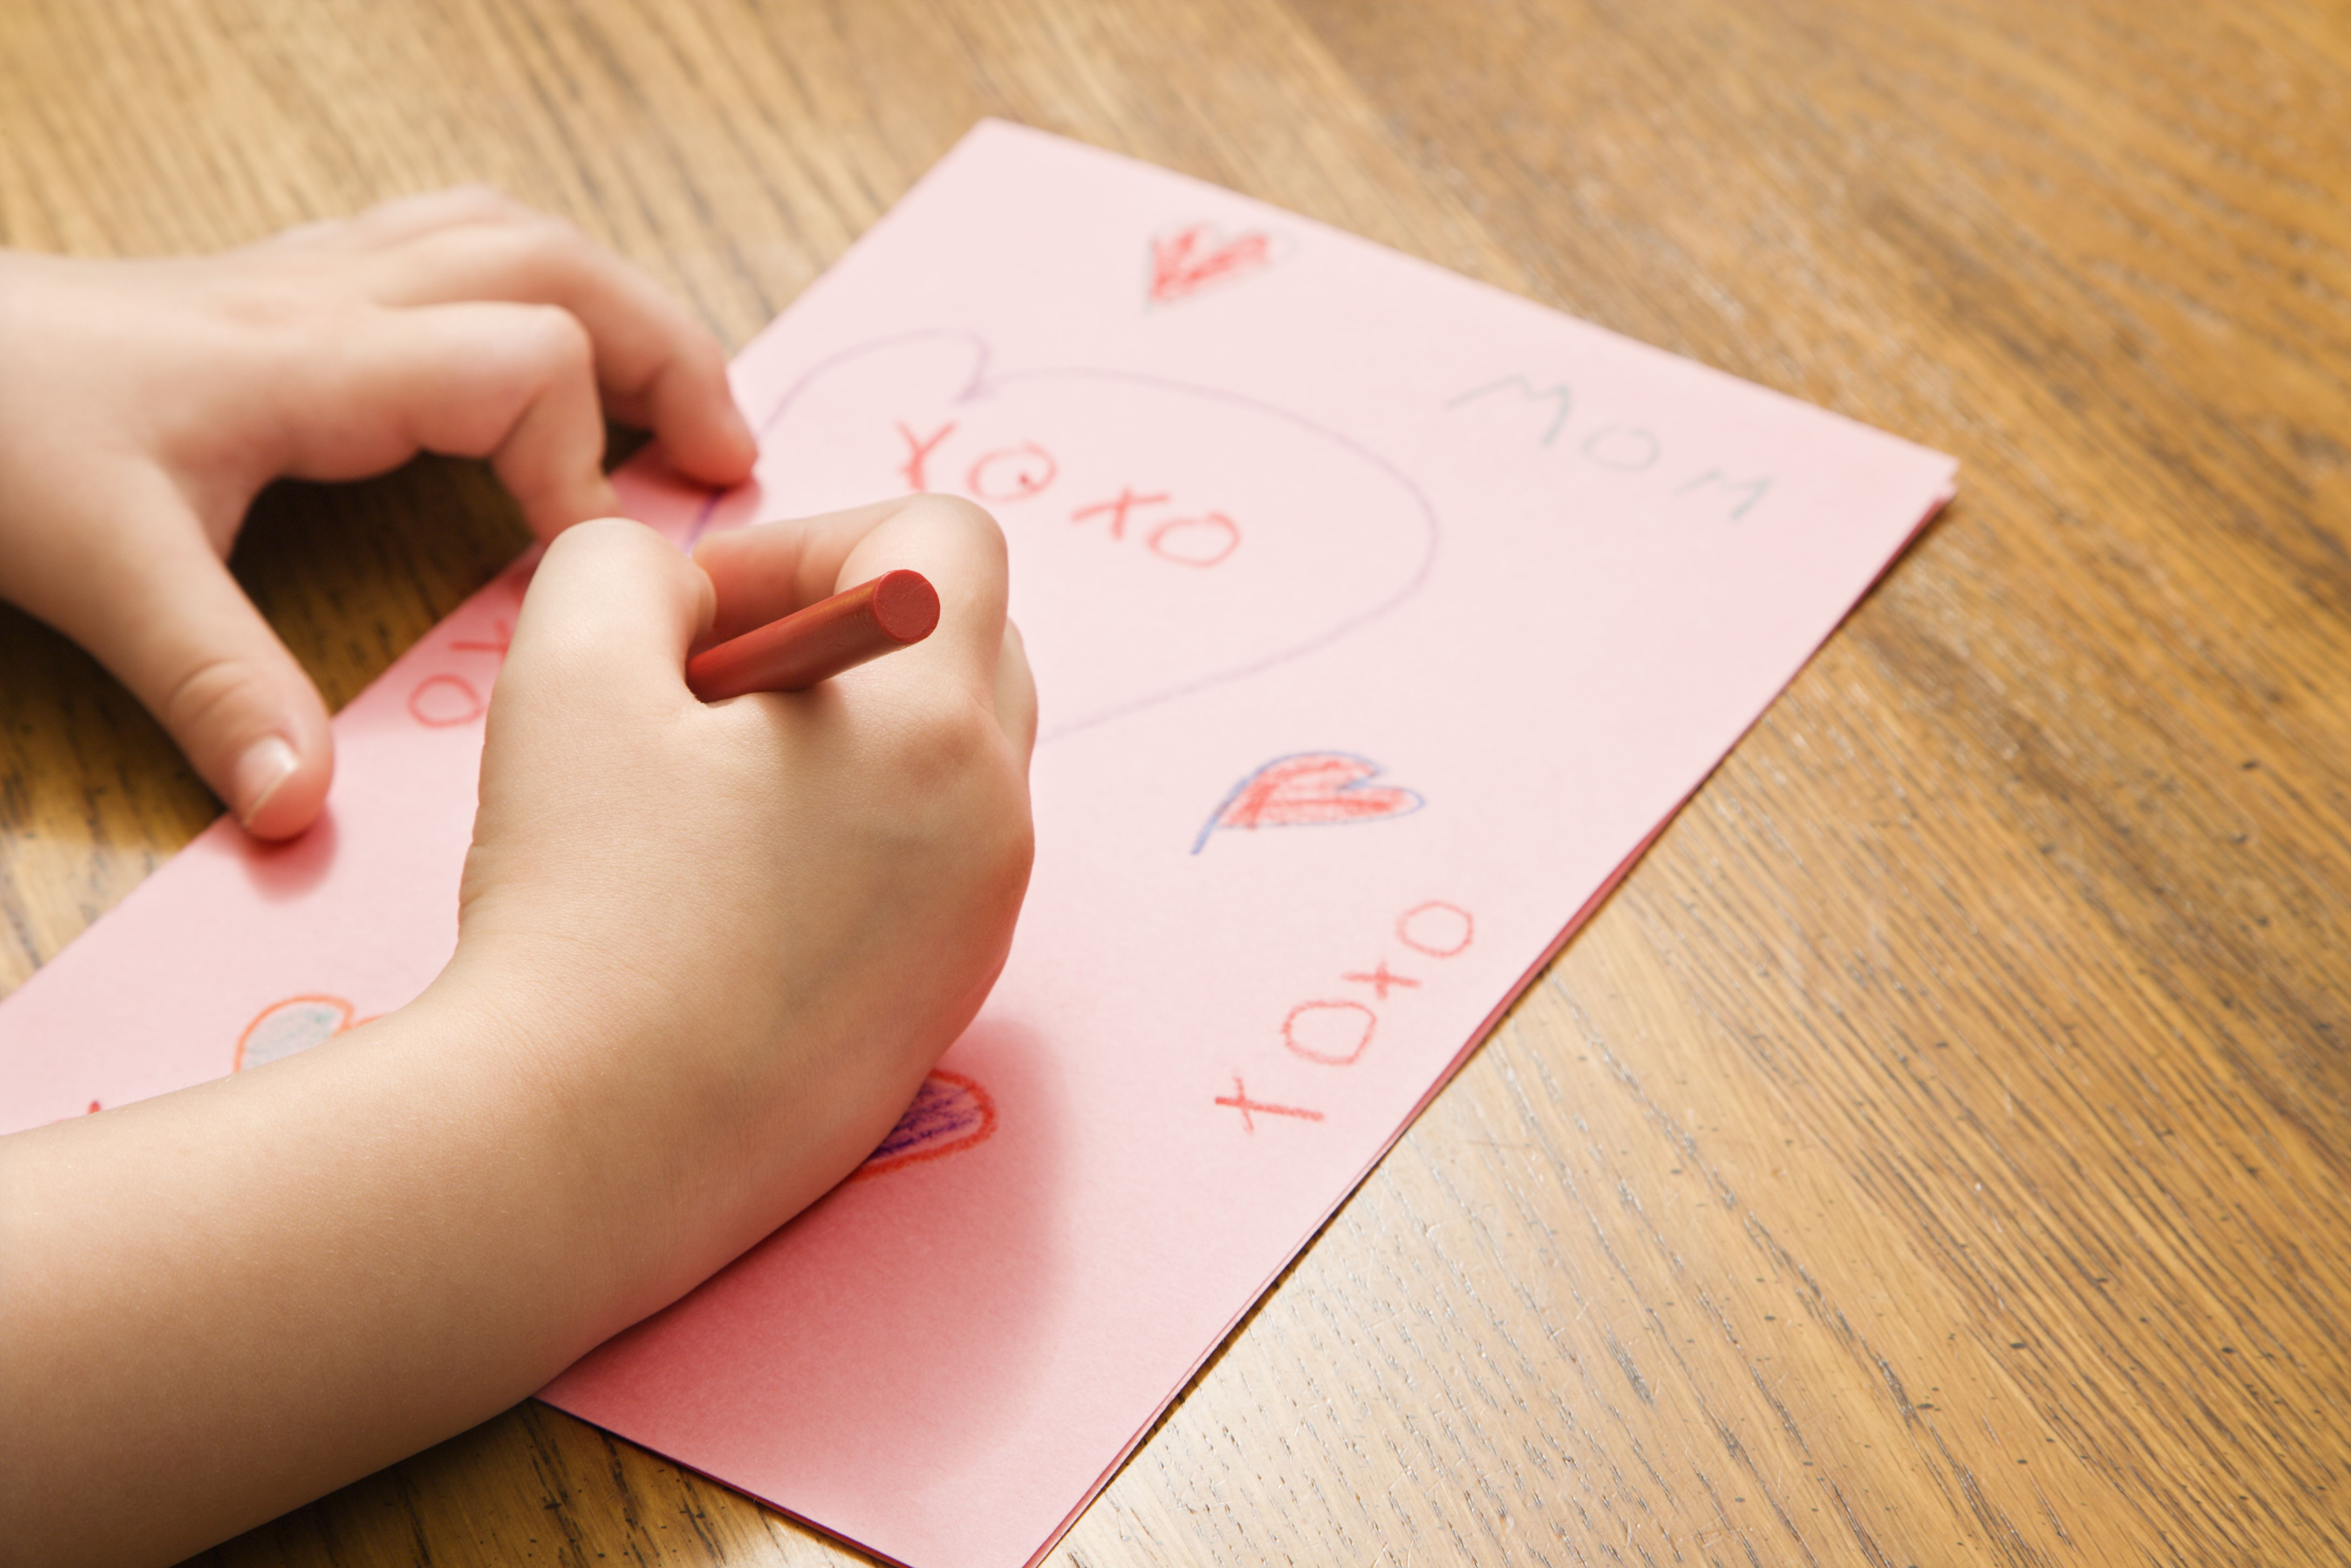 Child hands drawing on paper with crayons